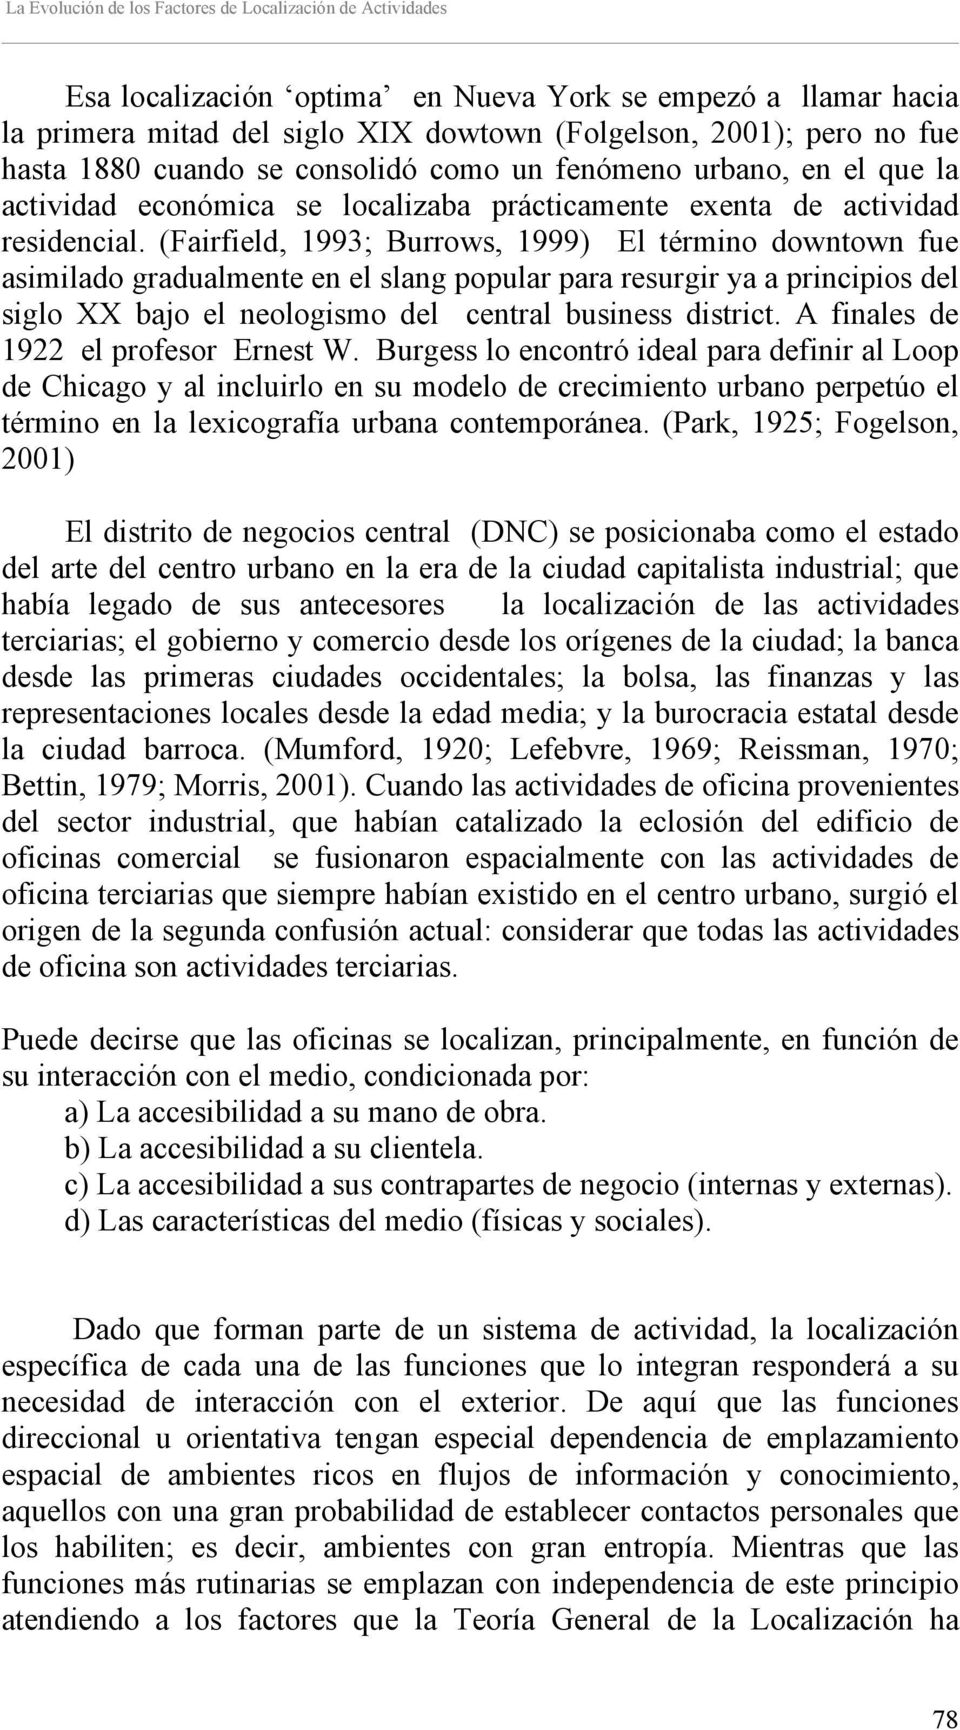 (Fairfield, 1993; Burrows, 1999) El término downtown fue asimilado gradualmente en el slang popular para resurgir ya a principios del siglo XX bajo el neologismo del central business district.